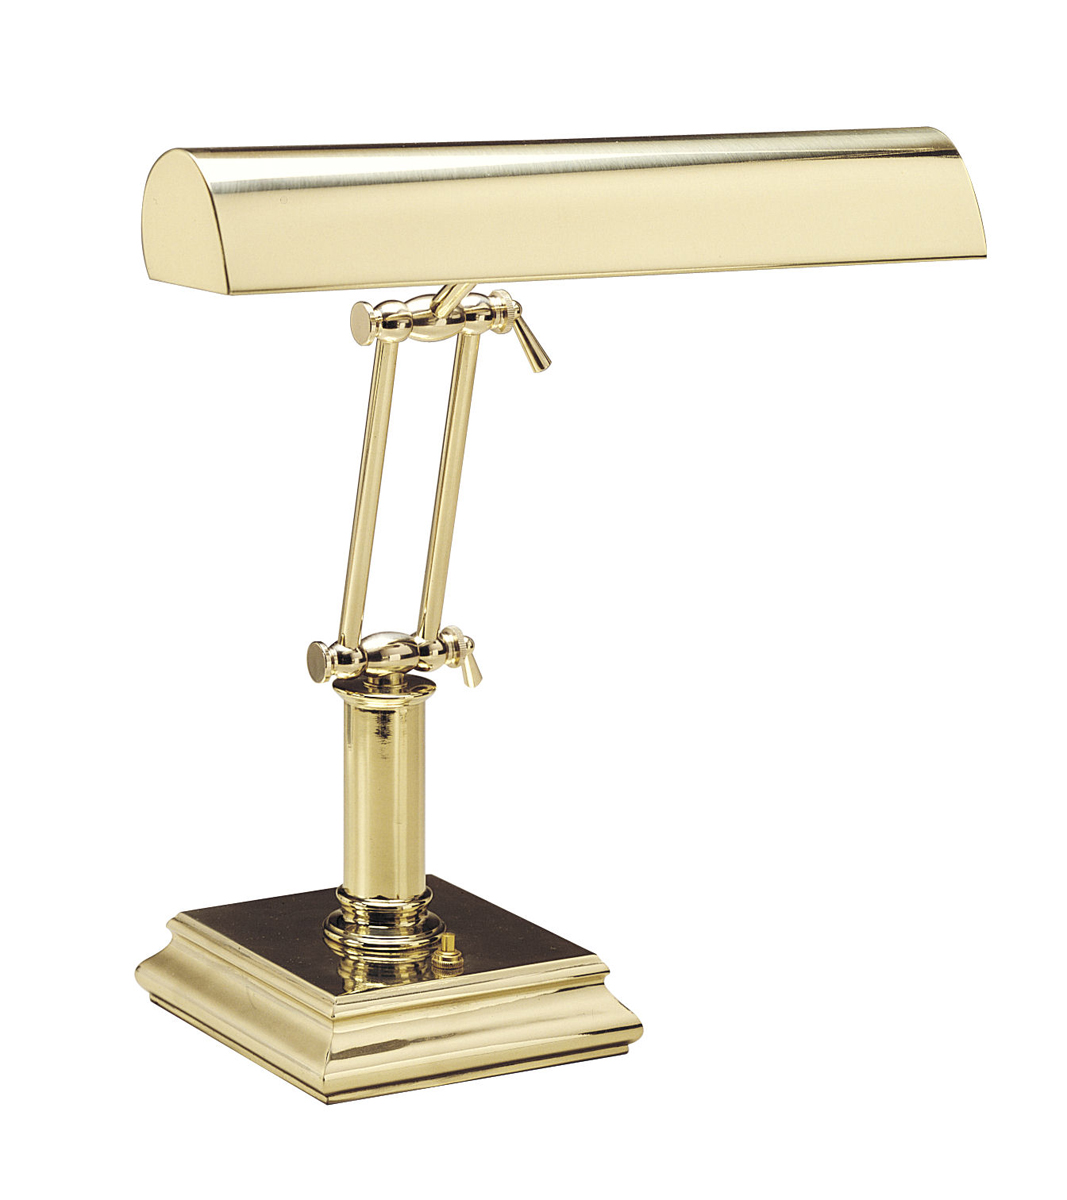 House of troy p14 202 ab piano desk lamp contemporary - House Of Troy P14 201 14 Inch Piano Desk Lamp Shown In Polished Brass